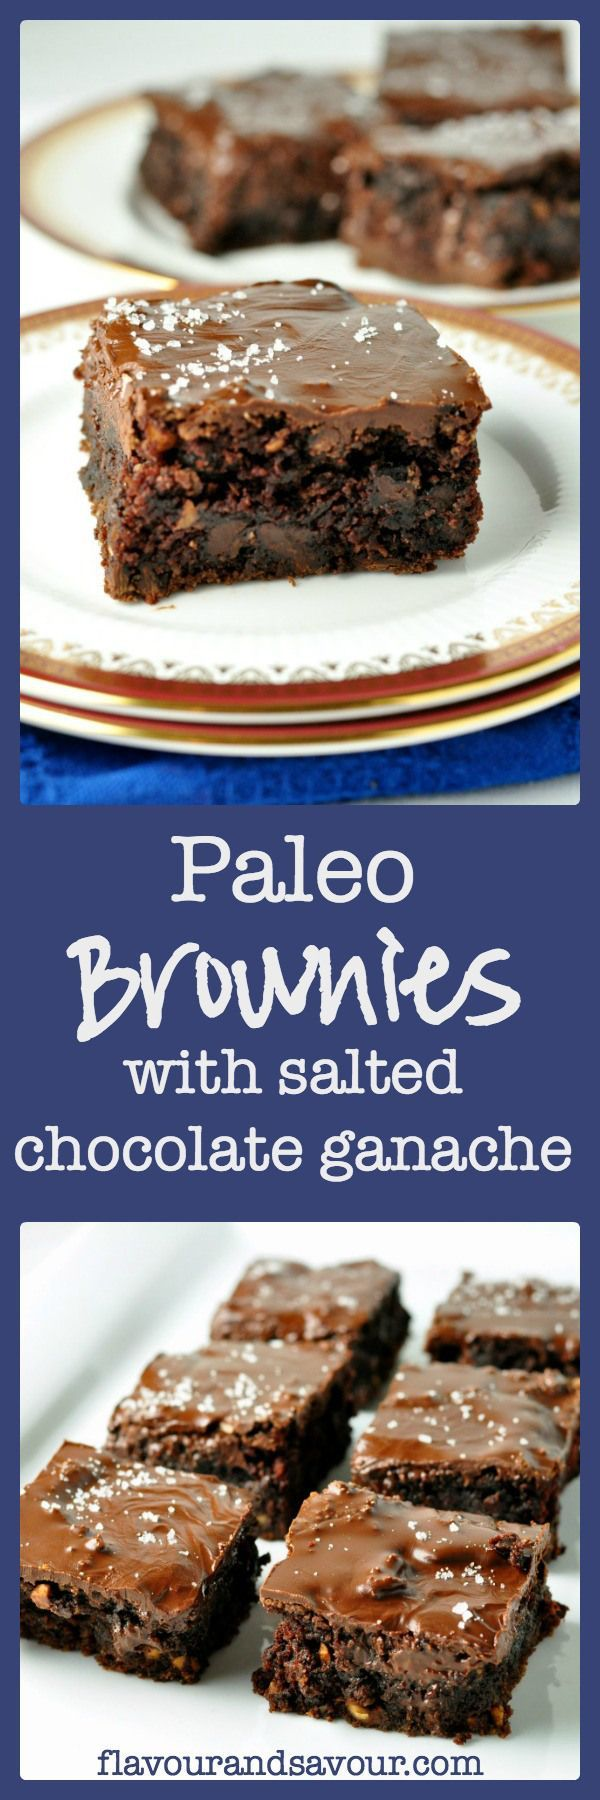 Paleo Brownies with Salted Chocolate Ganache. Oh my. A fudgy but cake-like brownie topped with an easy-to-make salted chocolate ganache. Paleo!  |www.flavourandsavour.com